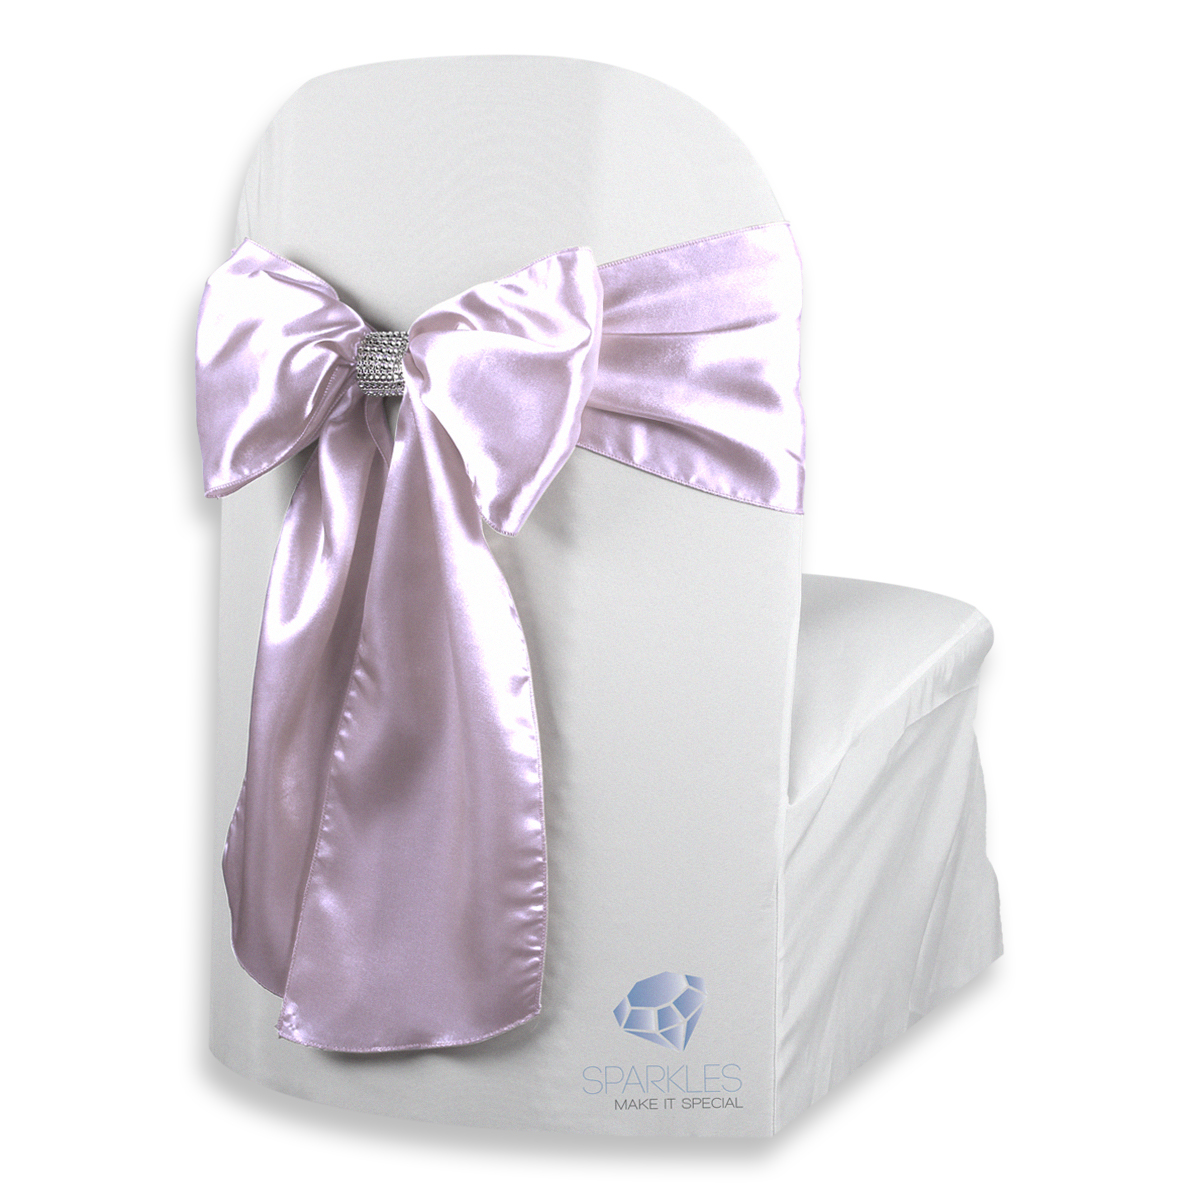 banquet chair covers with sashes rio gear ultimate backpack cooler 50 pcs satin cover bow sash 108 quotx8 quot wedding party